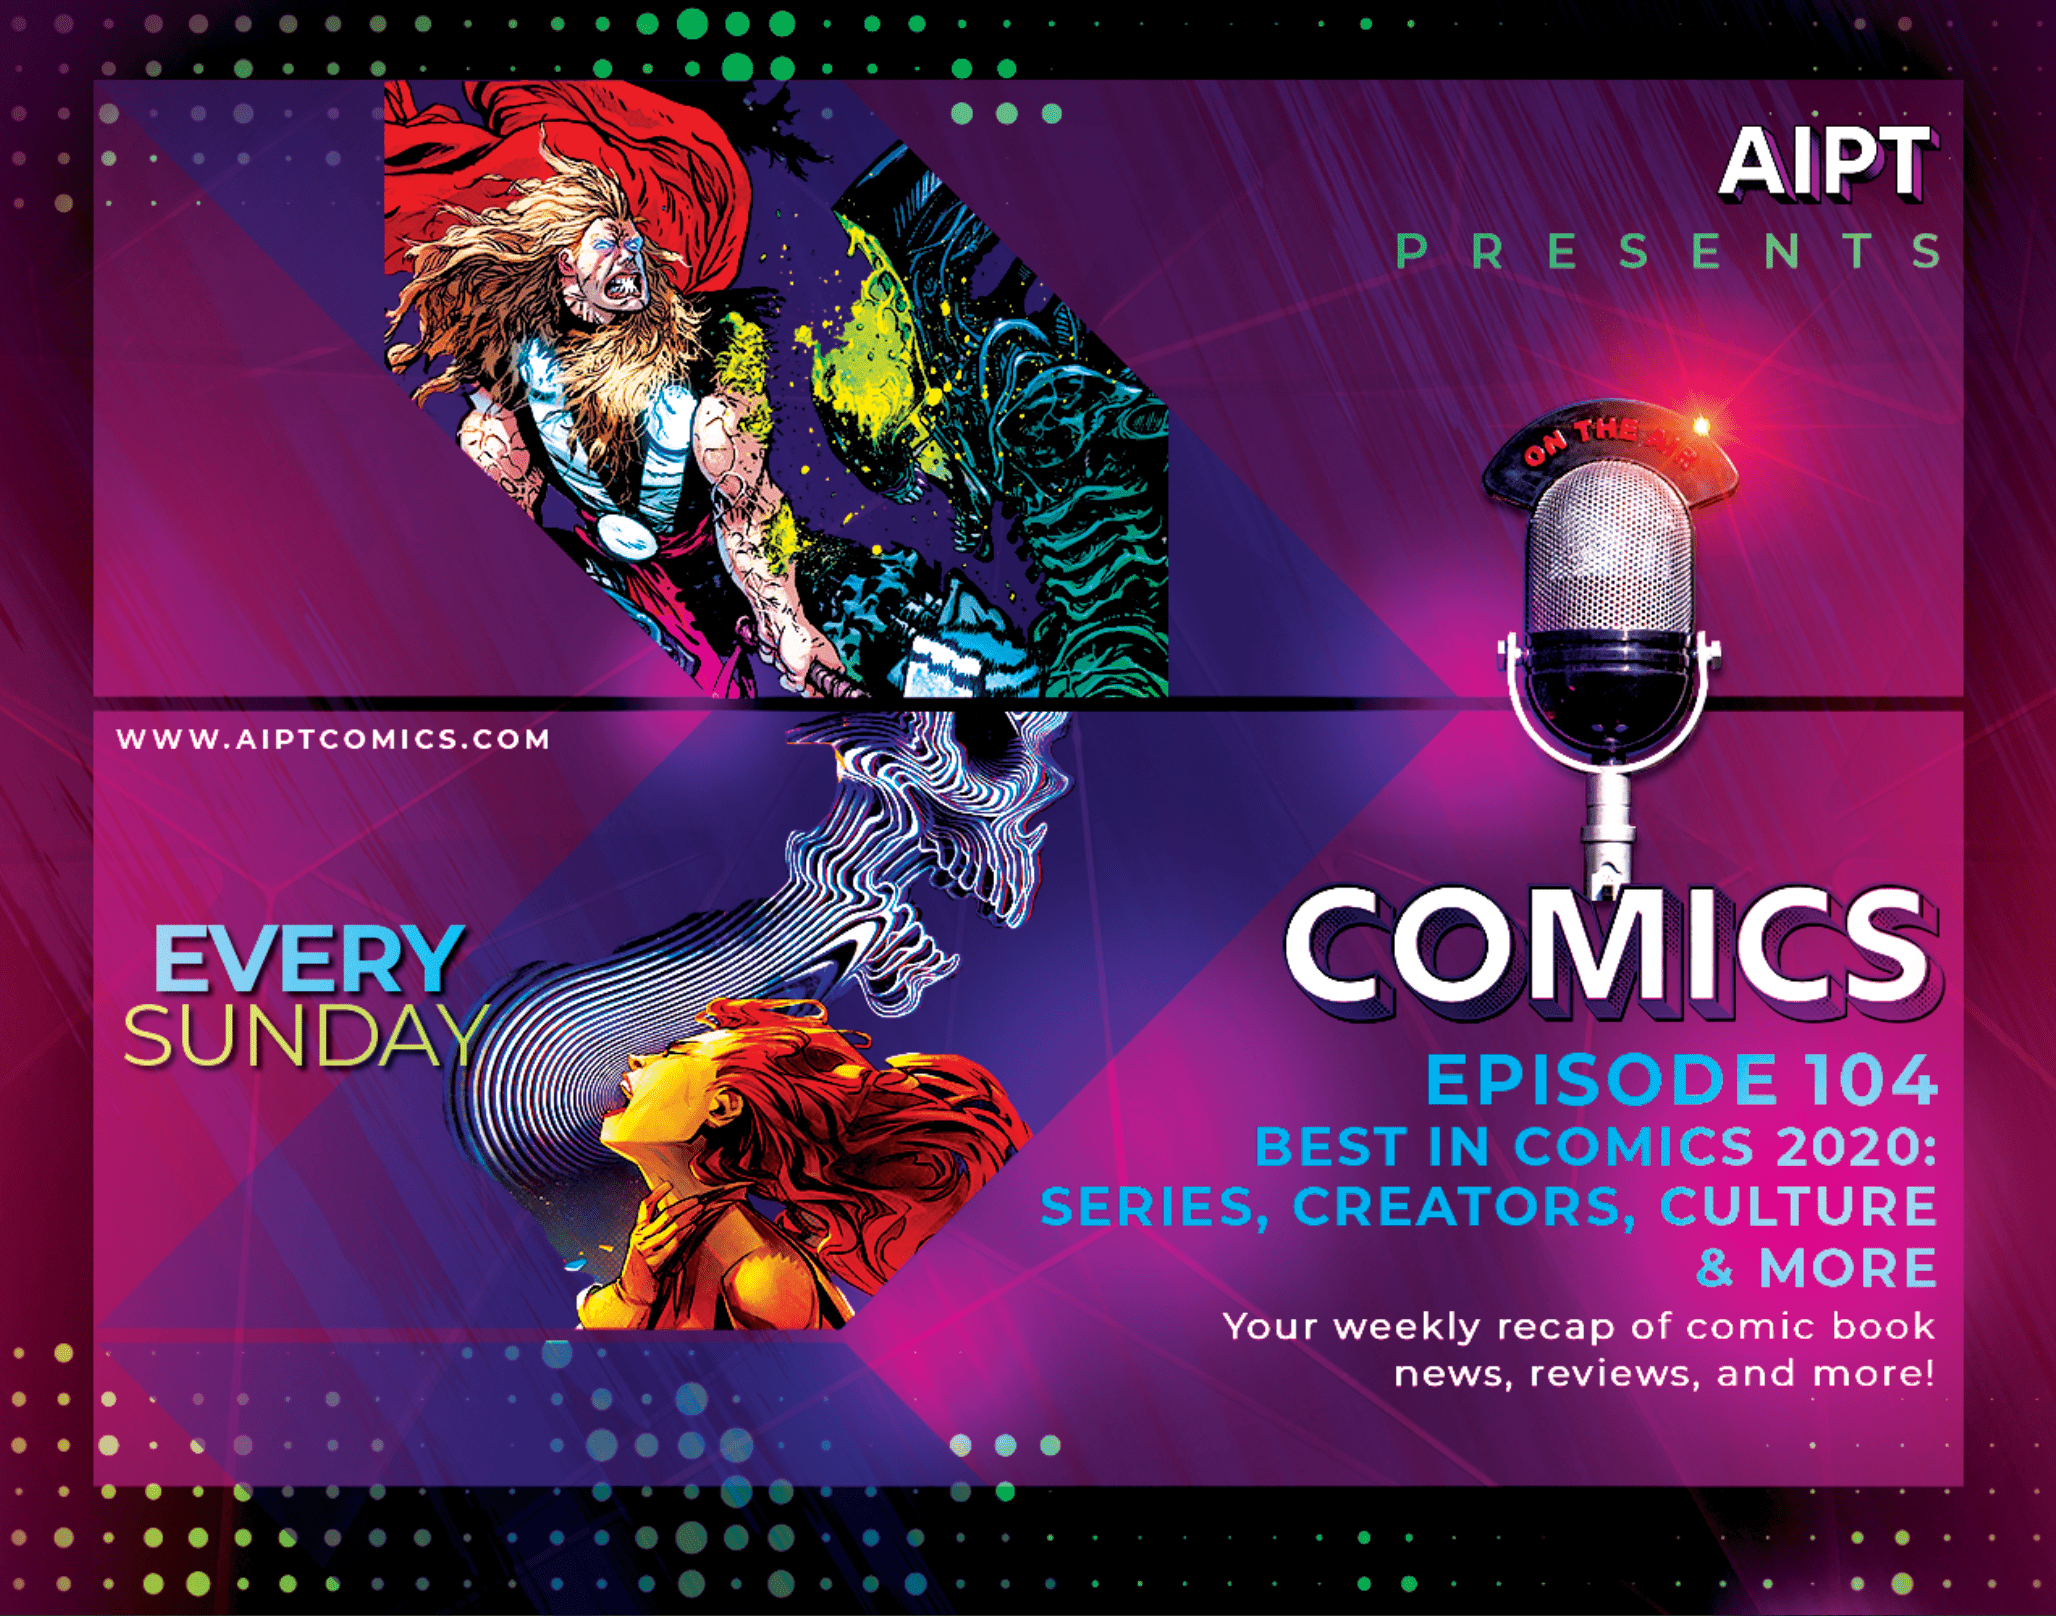 AIPT Comics Podcast Episode 104: Best in Comics 2020: Series, creators, culture & more